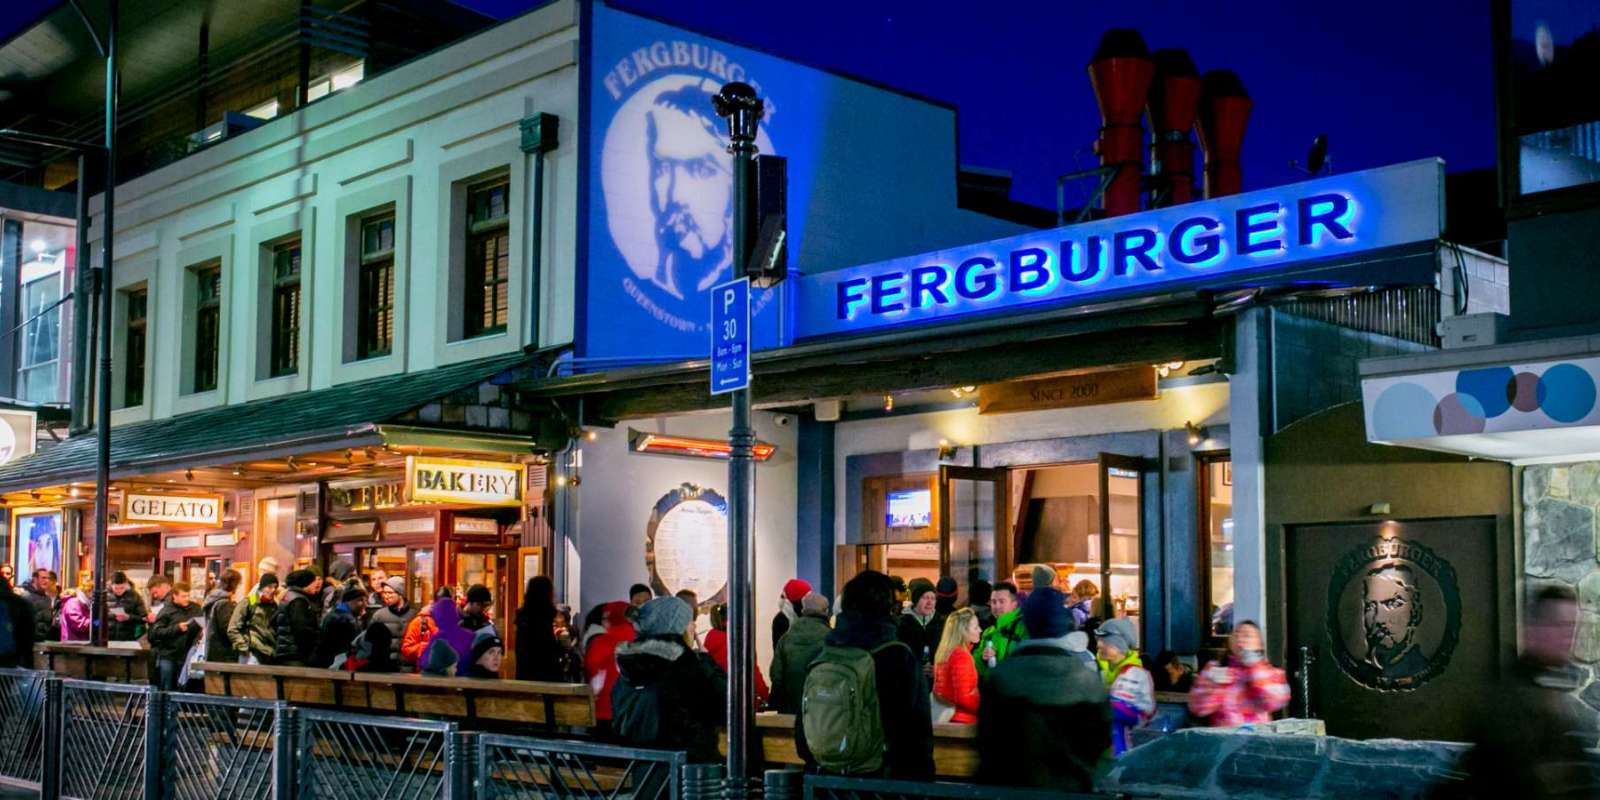 Fergberger queue at night